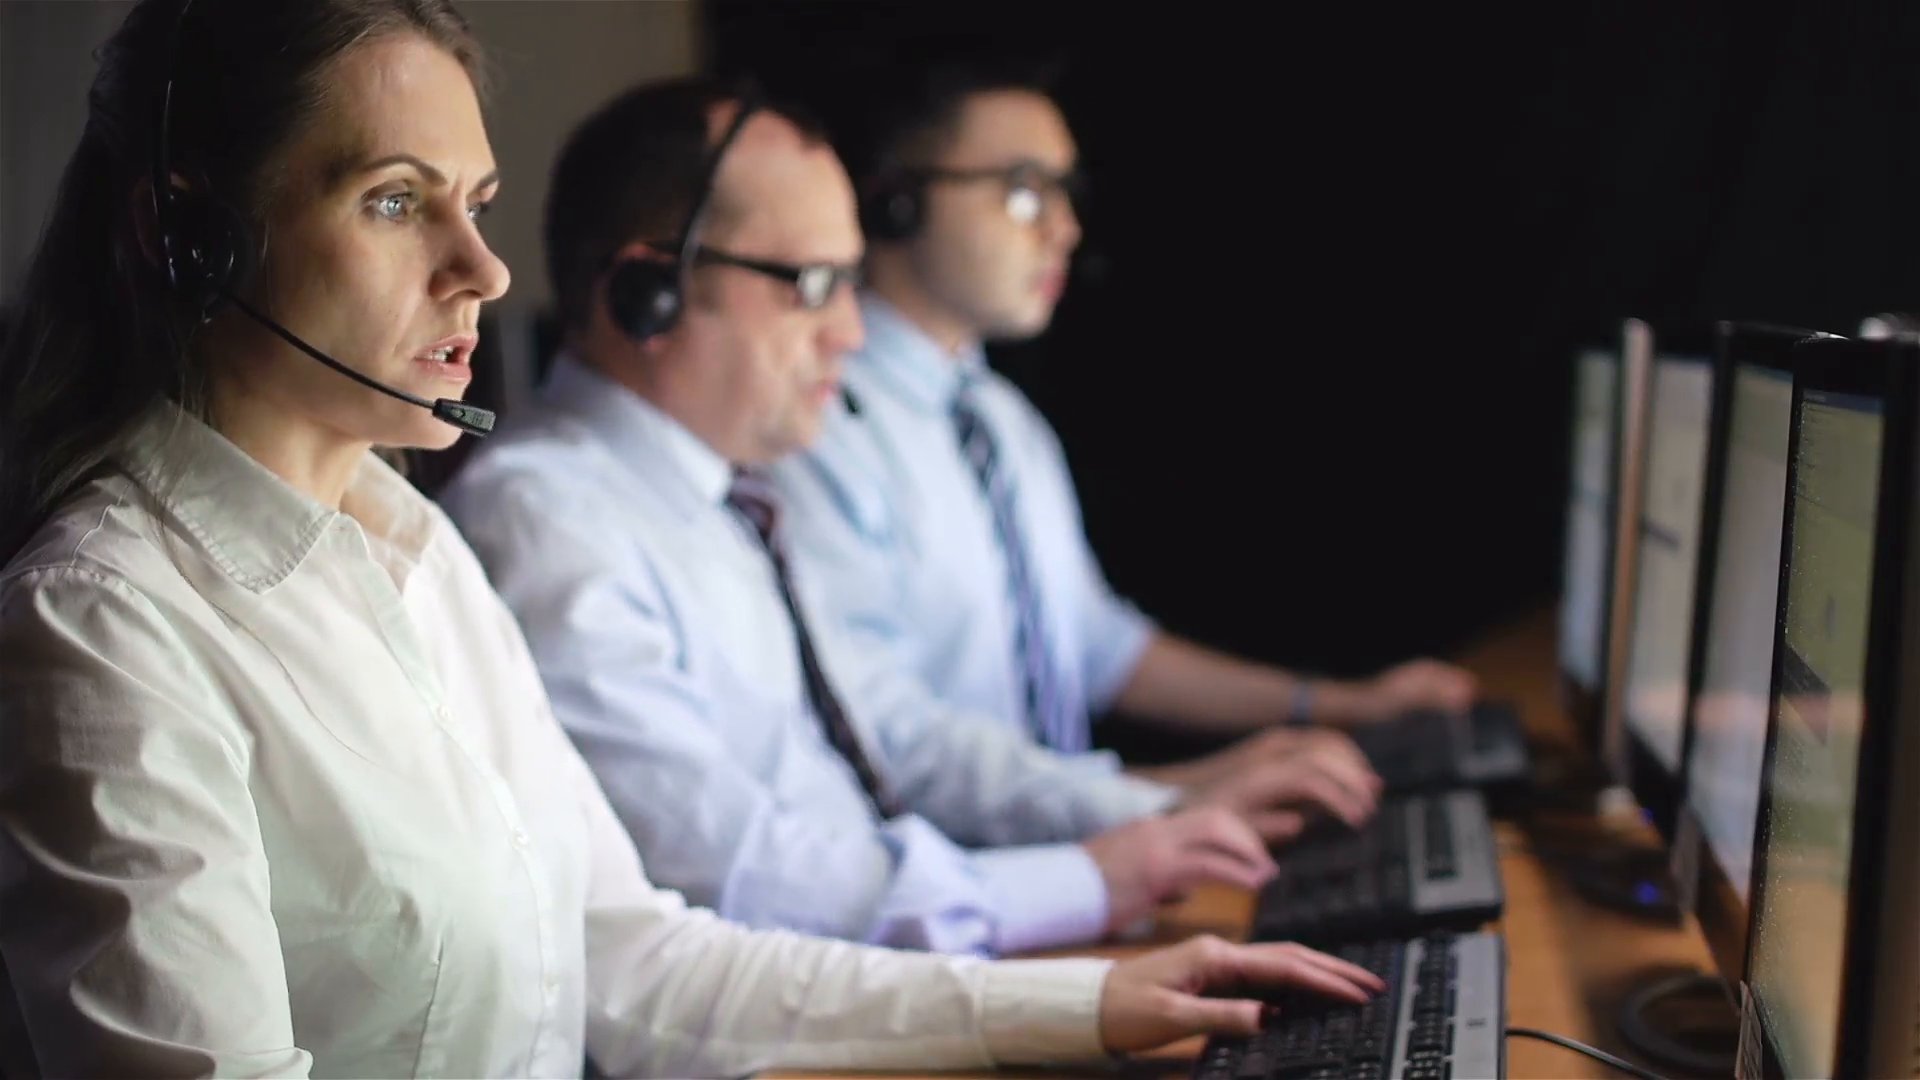 Female operator consulting clients online with male colleagues on 1920x1080